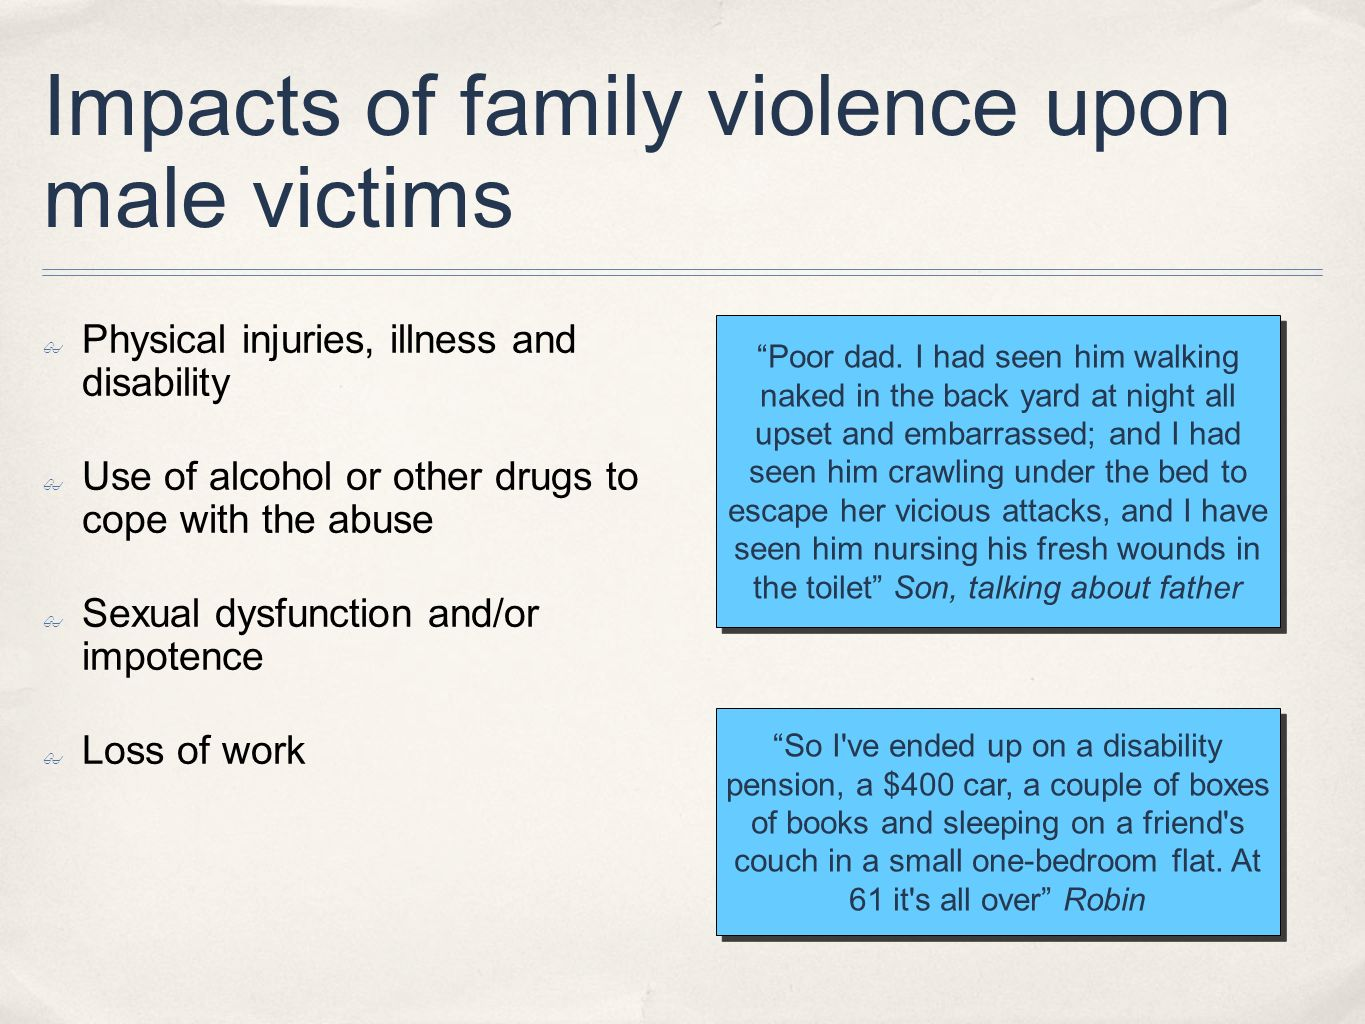 Impacts of family violence upon male victims